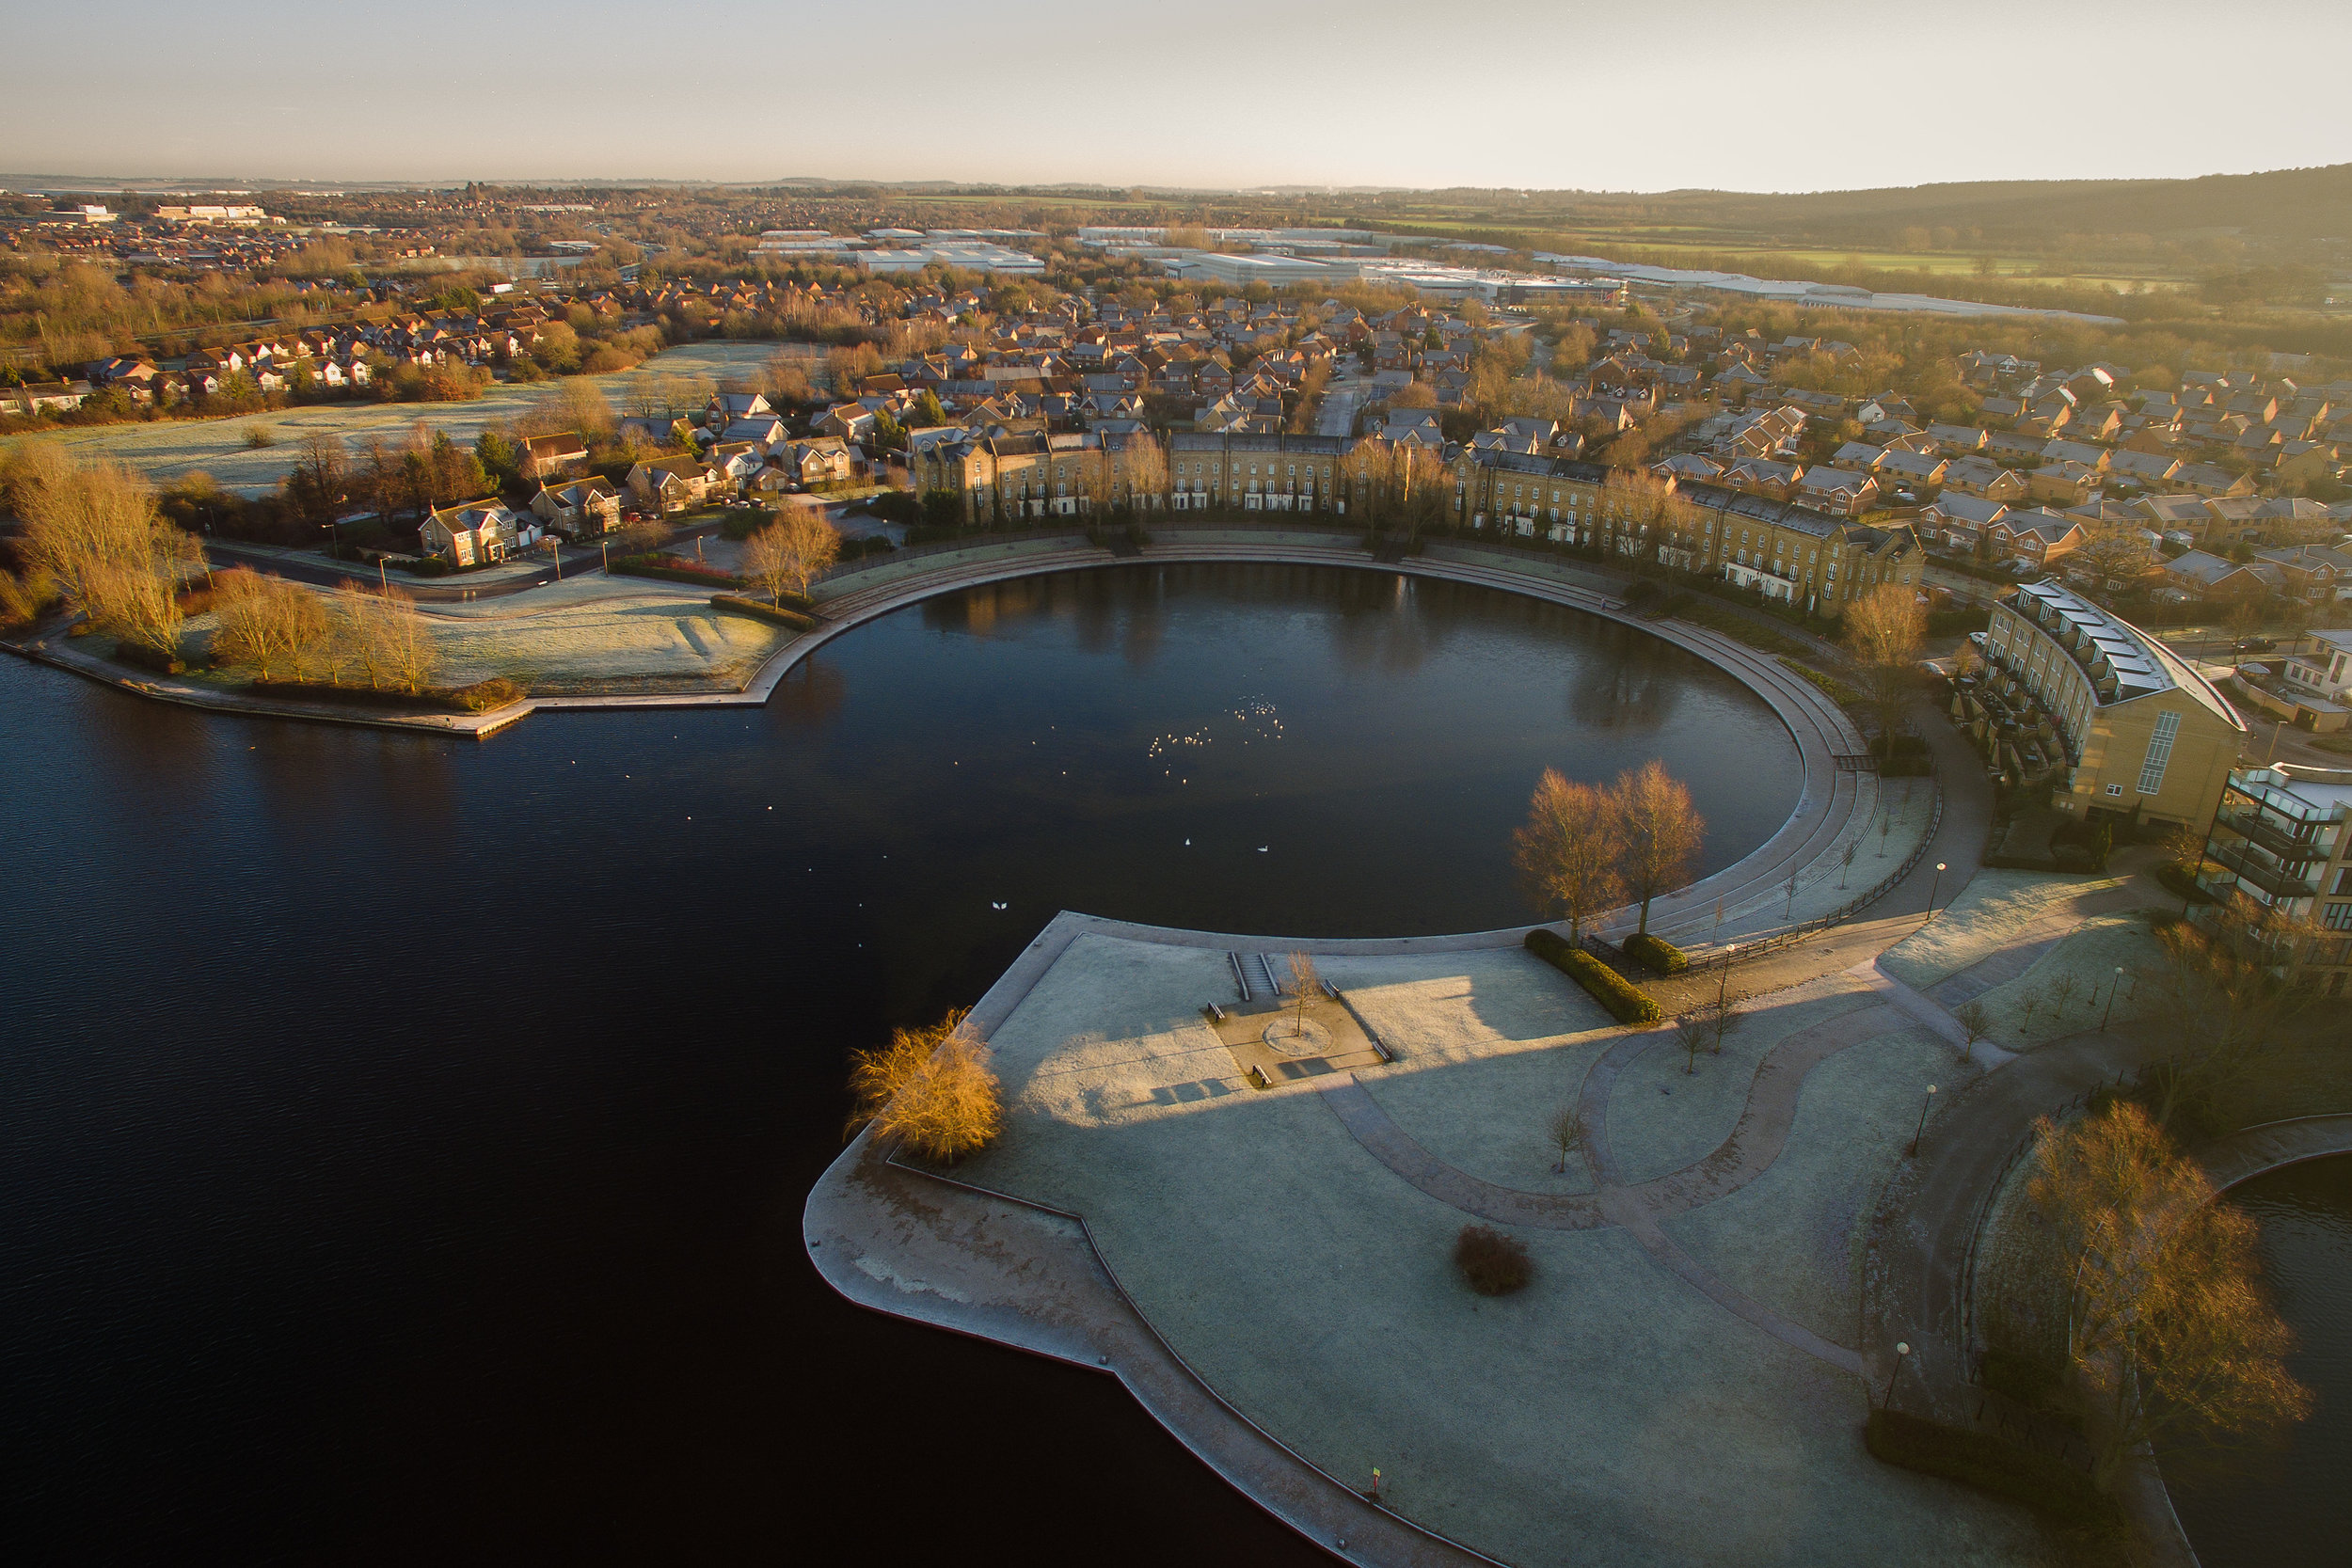 A frosty winter sunrise over Caldecotte Lake in Milton Keynes, photographed by Matthew Thompson using a DJI Inspire 1 drone.